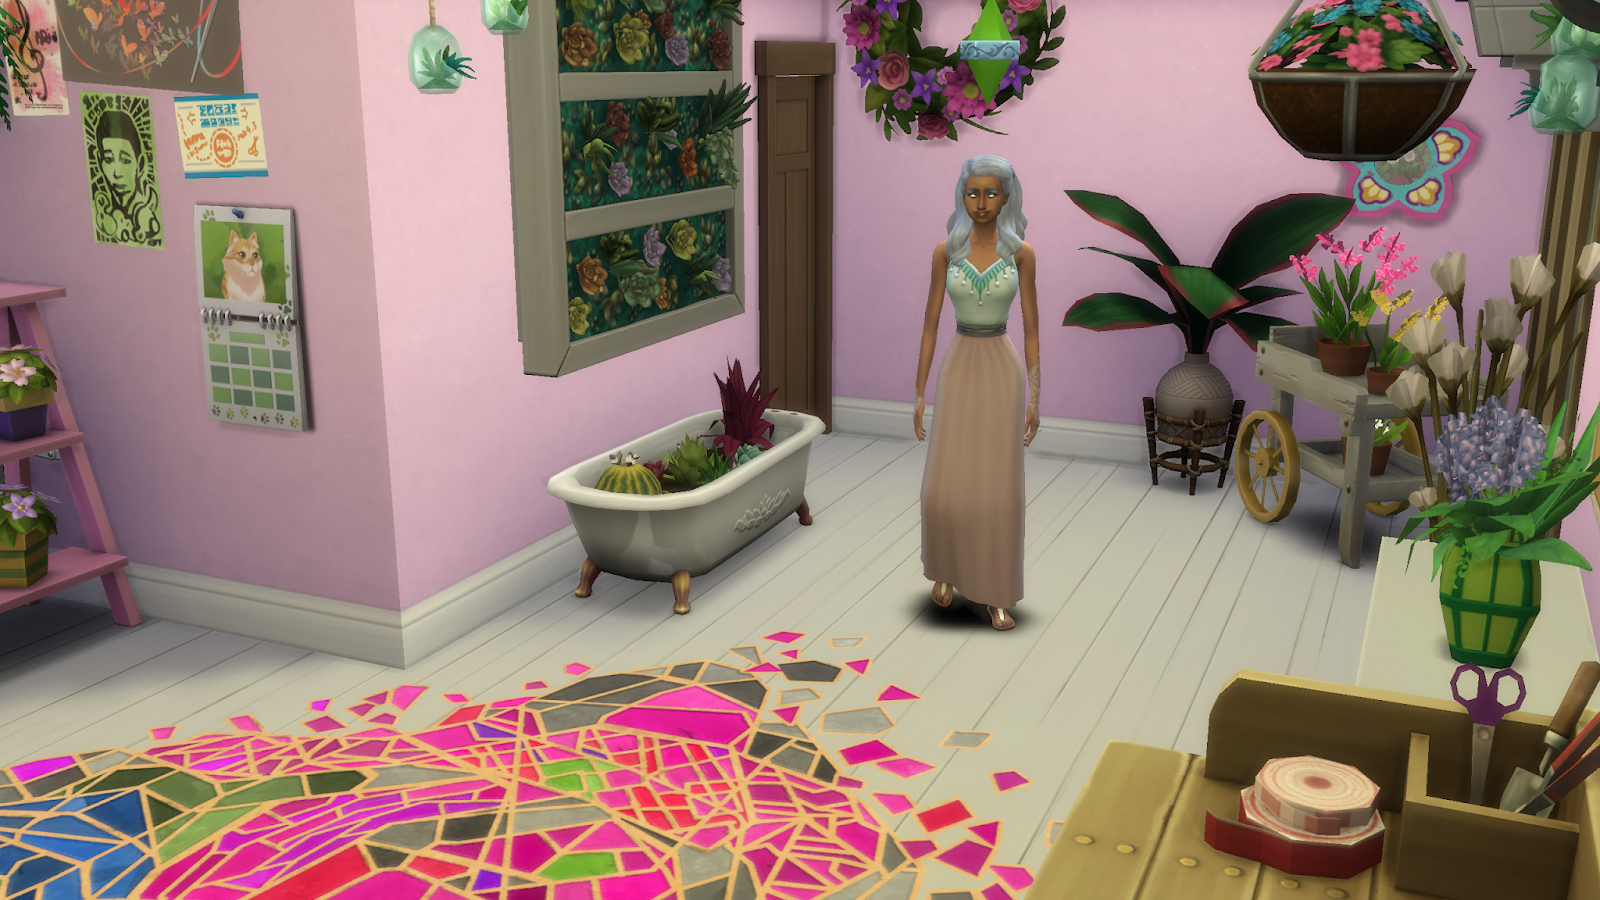 Screen grab of some game play from sims 4 - Sim standing in a room filled with flowers